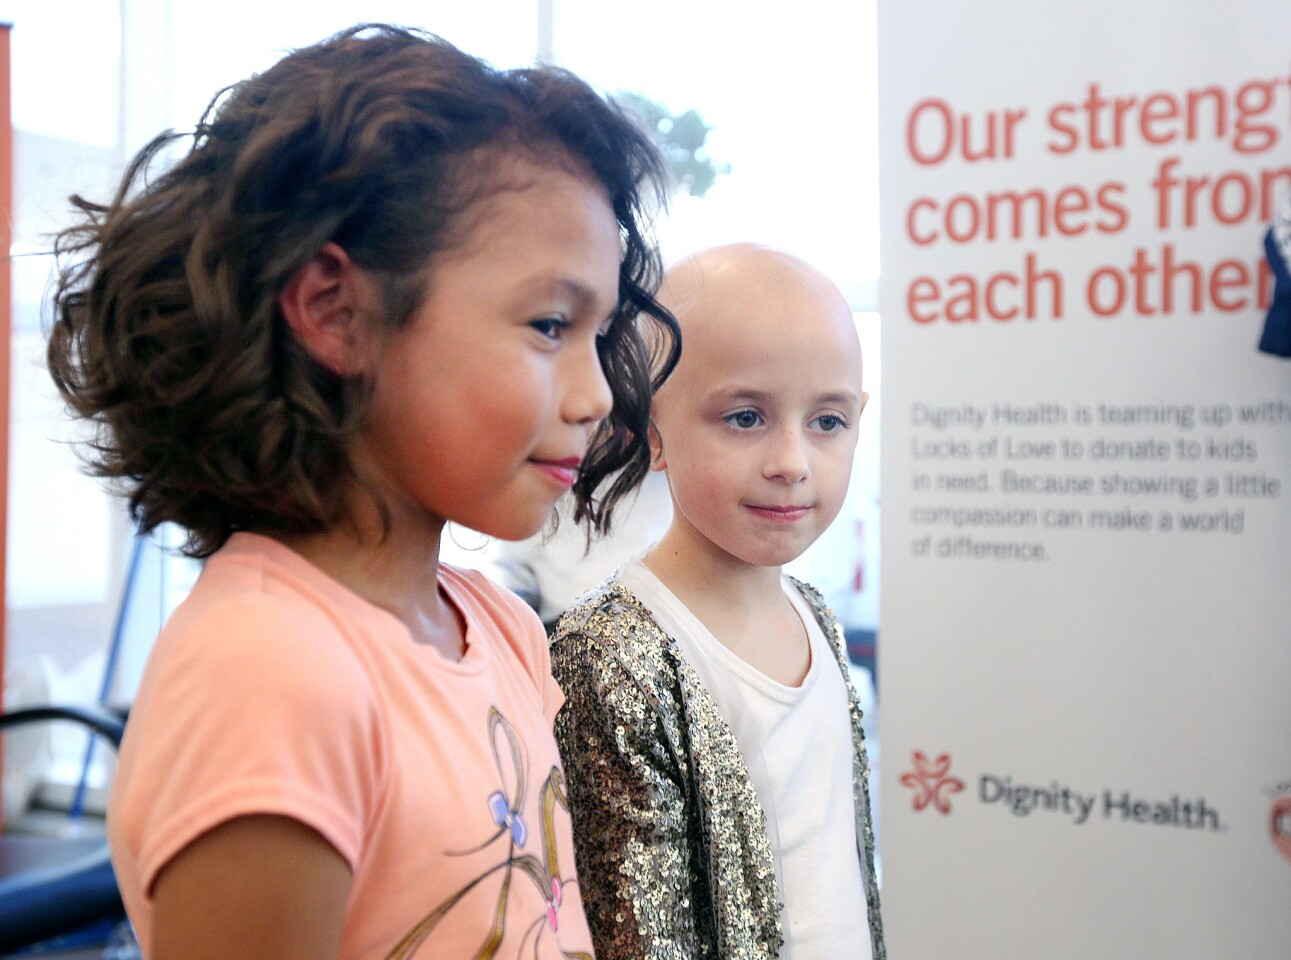 Photo Gallery: Locks of Love event at Dignity Health - Glendale Memorial Hospital